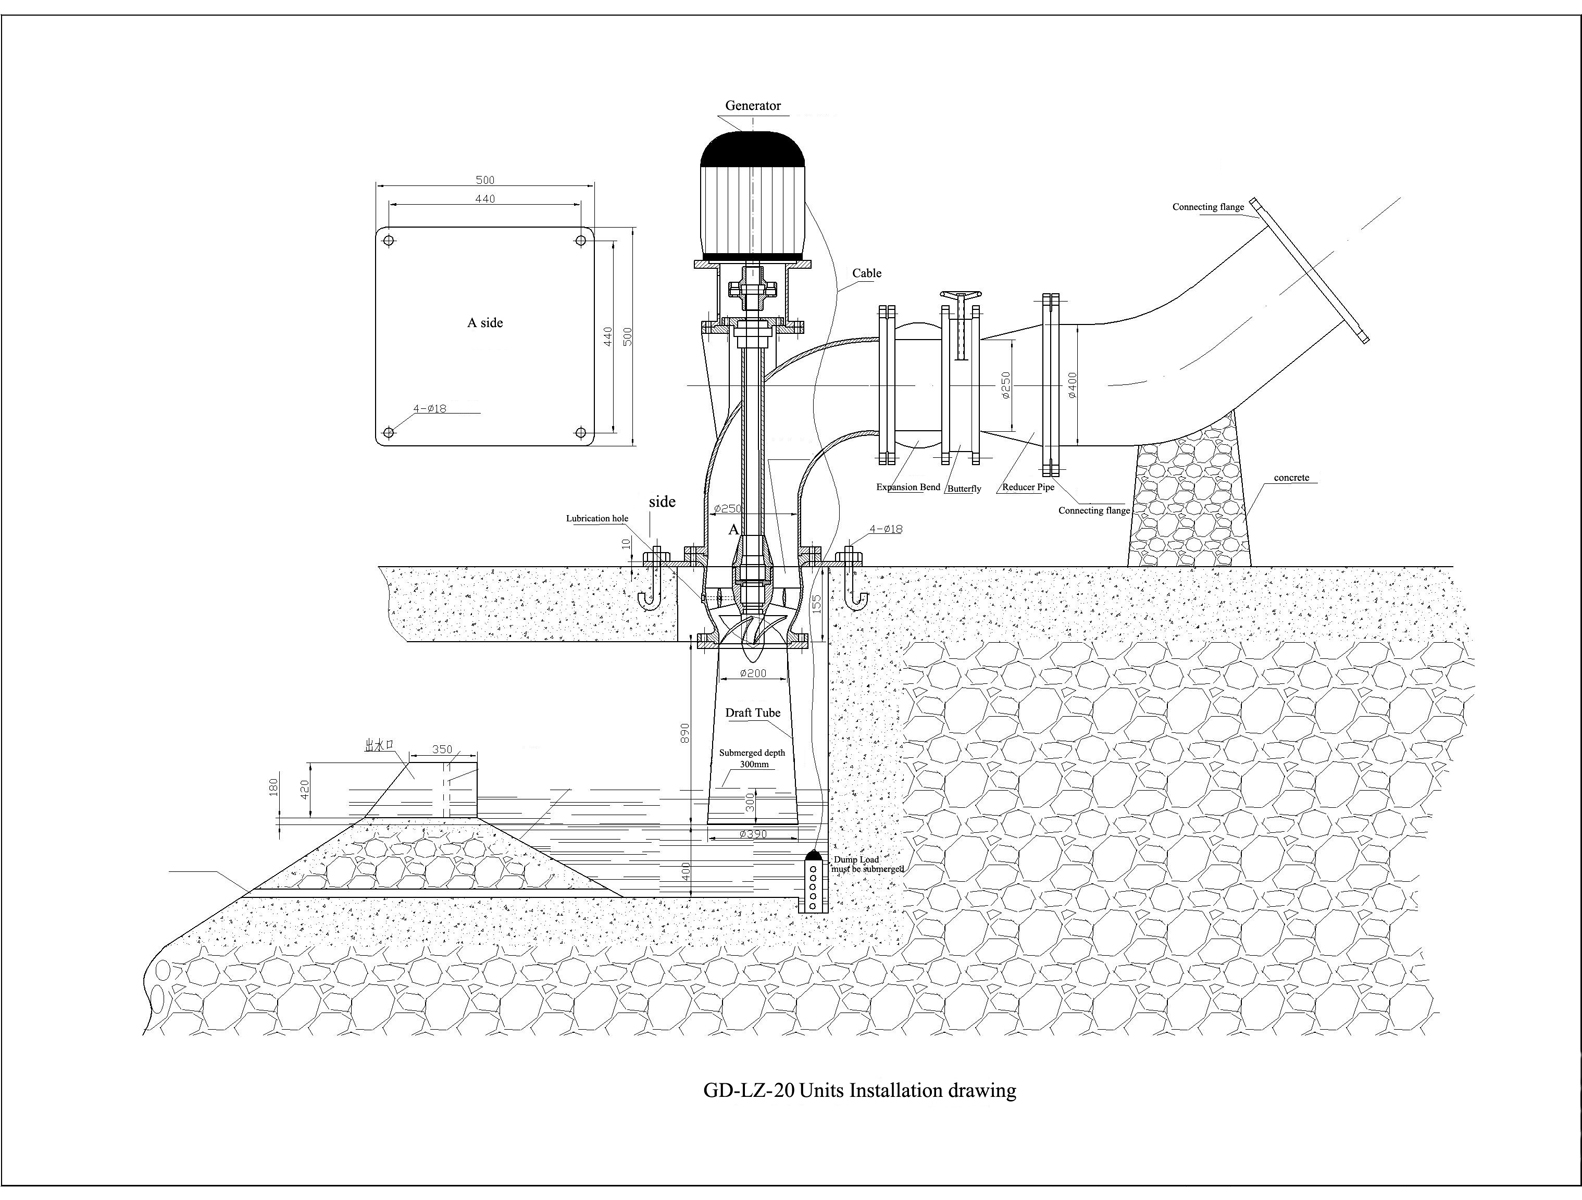 GD-LZ-20-3KW install diagram